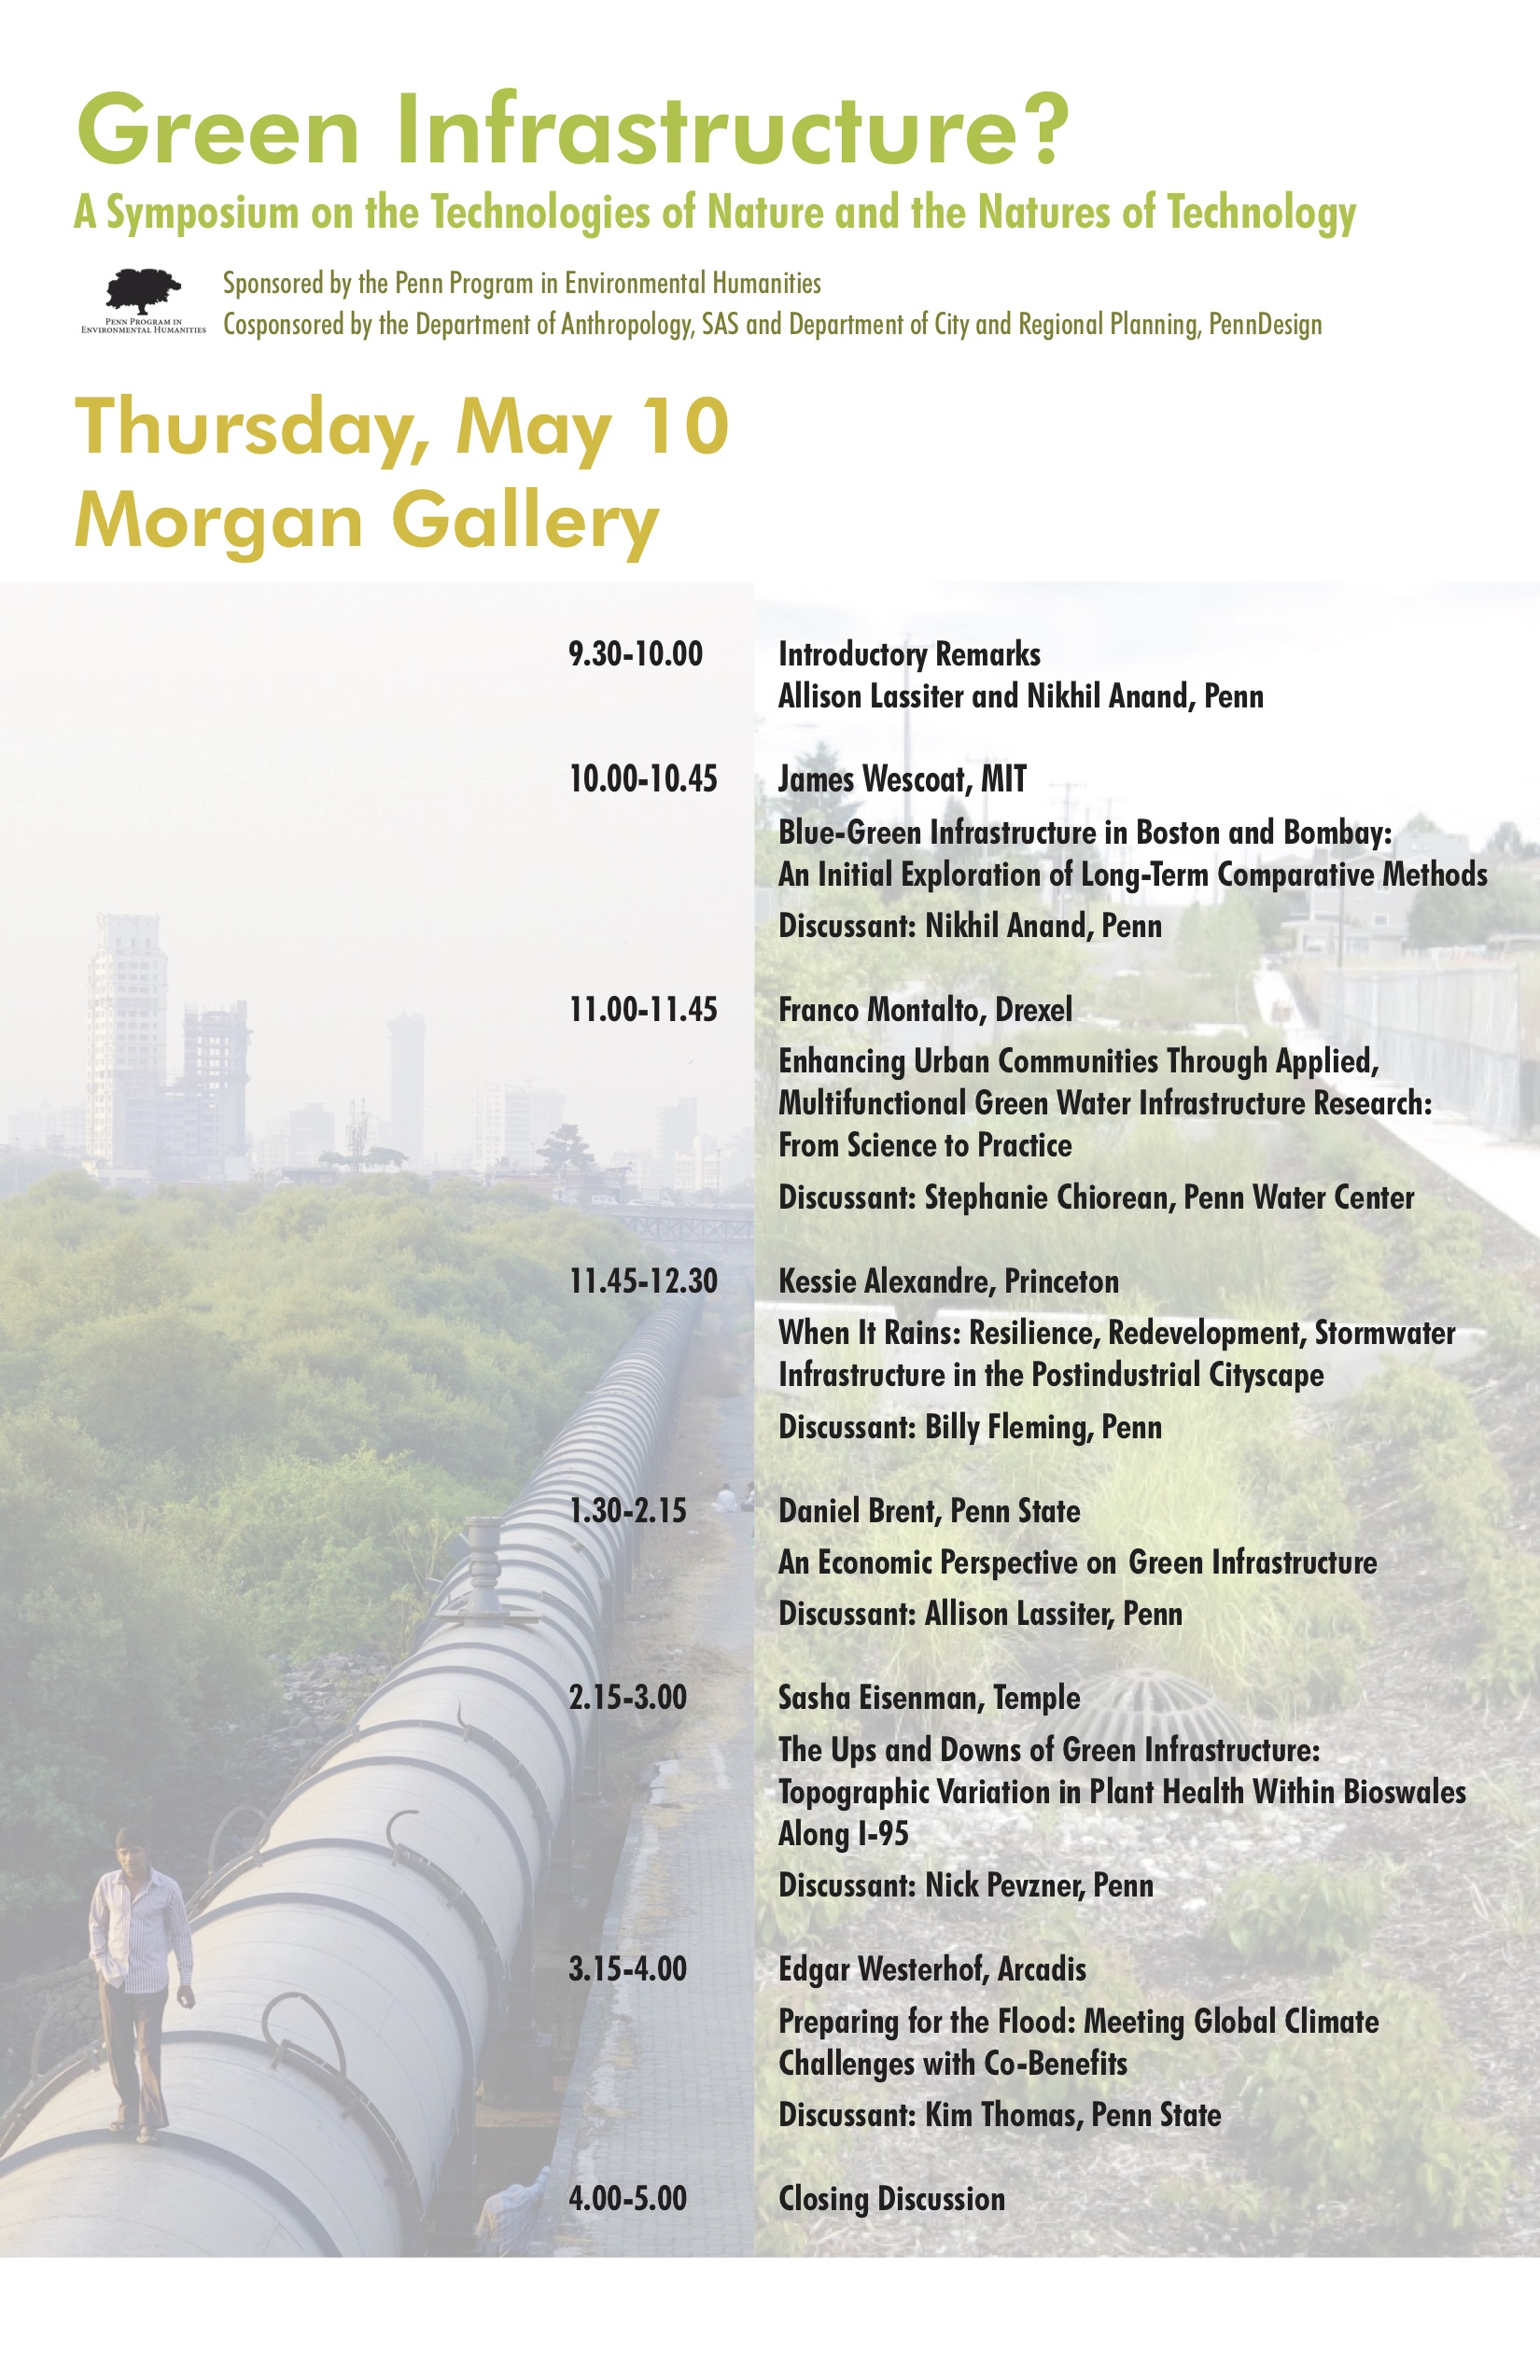 green infrastructure symposium program